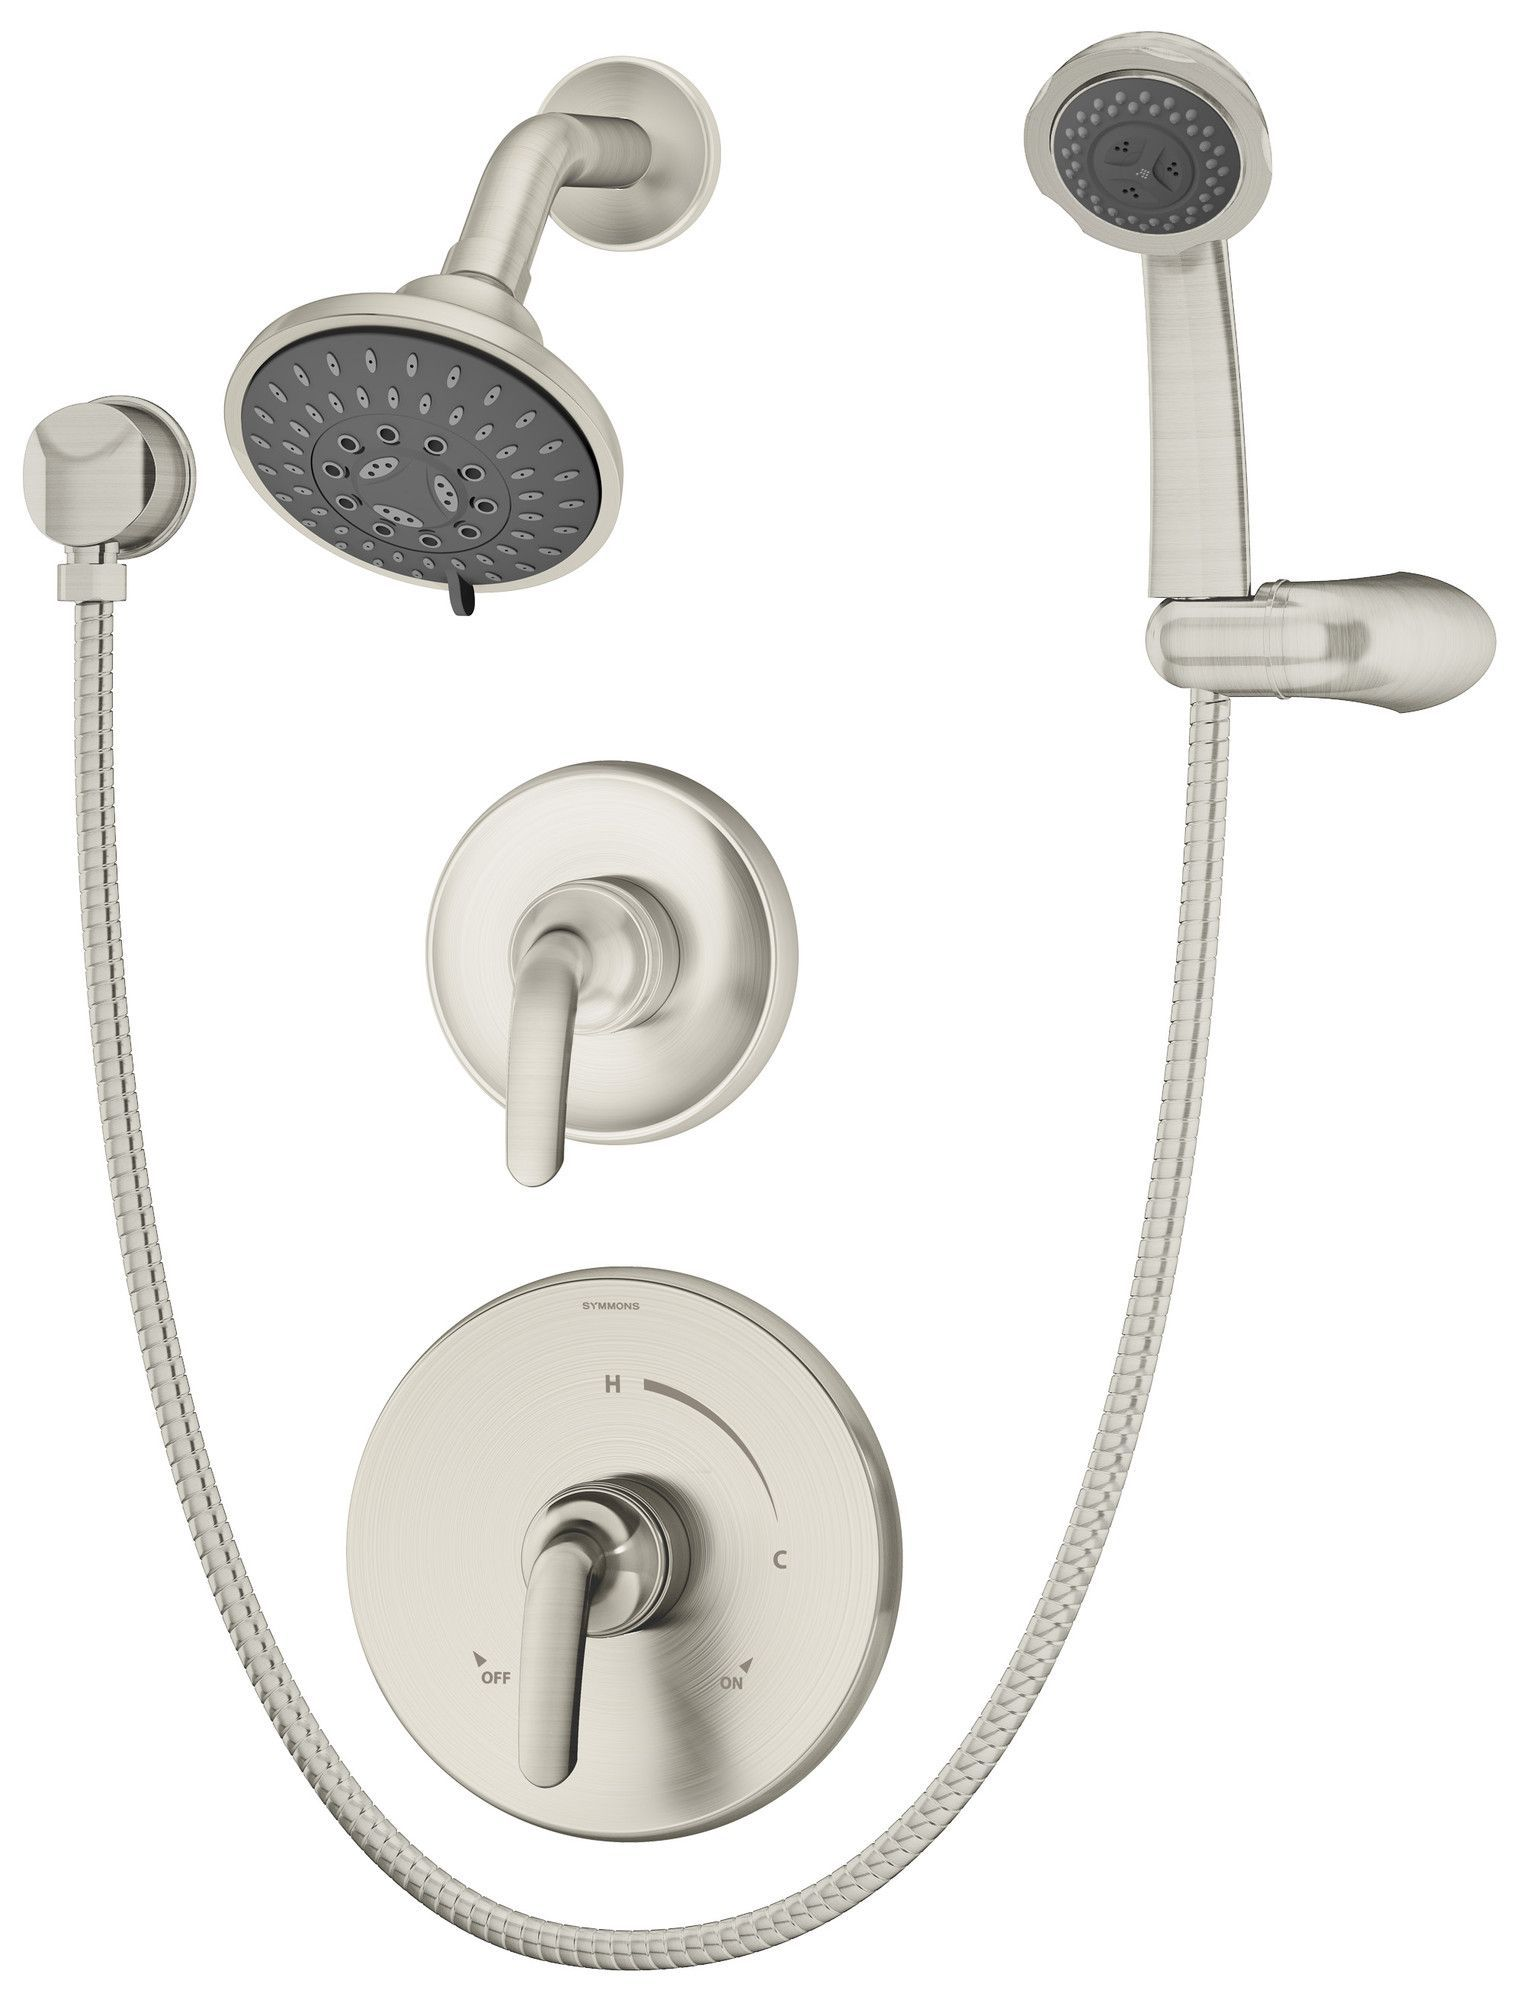 Elm Shower Faucet With Handheld Shower Head Shower Systems